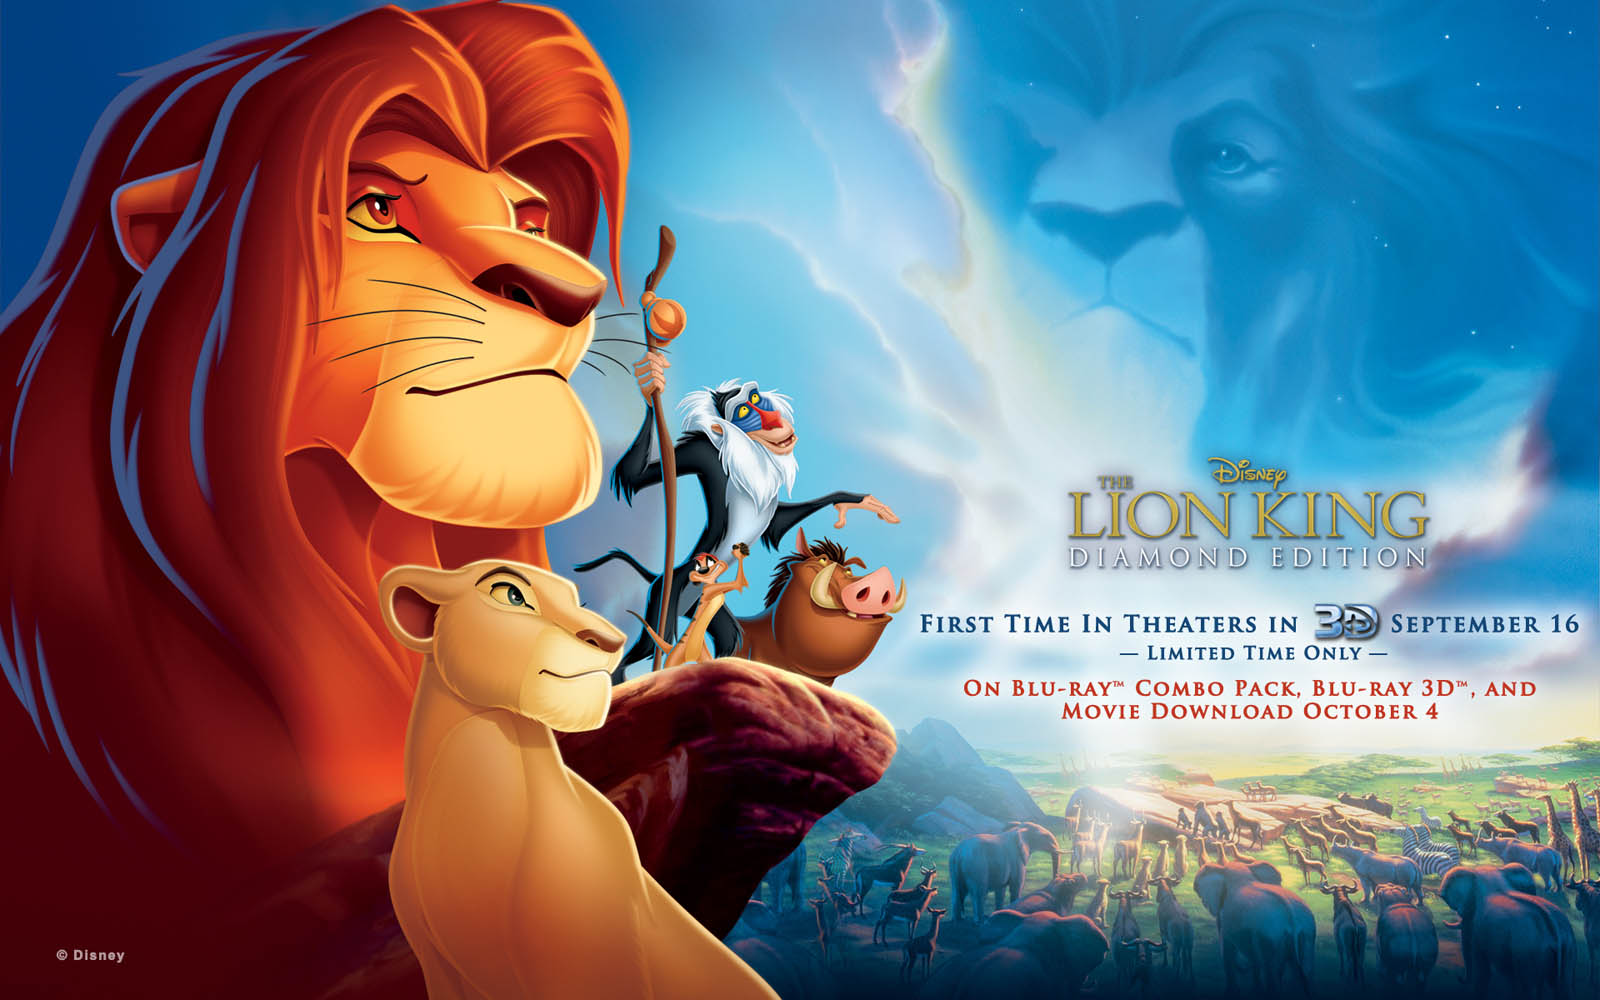 http://4.bp.blogspot.com/-O_vABms8MHY/UQuxsRbY1YI/AAAAAAAASJY/ka9x_6bn0BM/s1600/The+Lion+King+Wallpapers+02.jpg